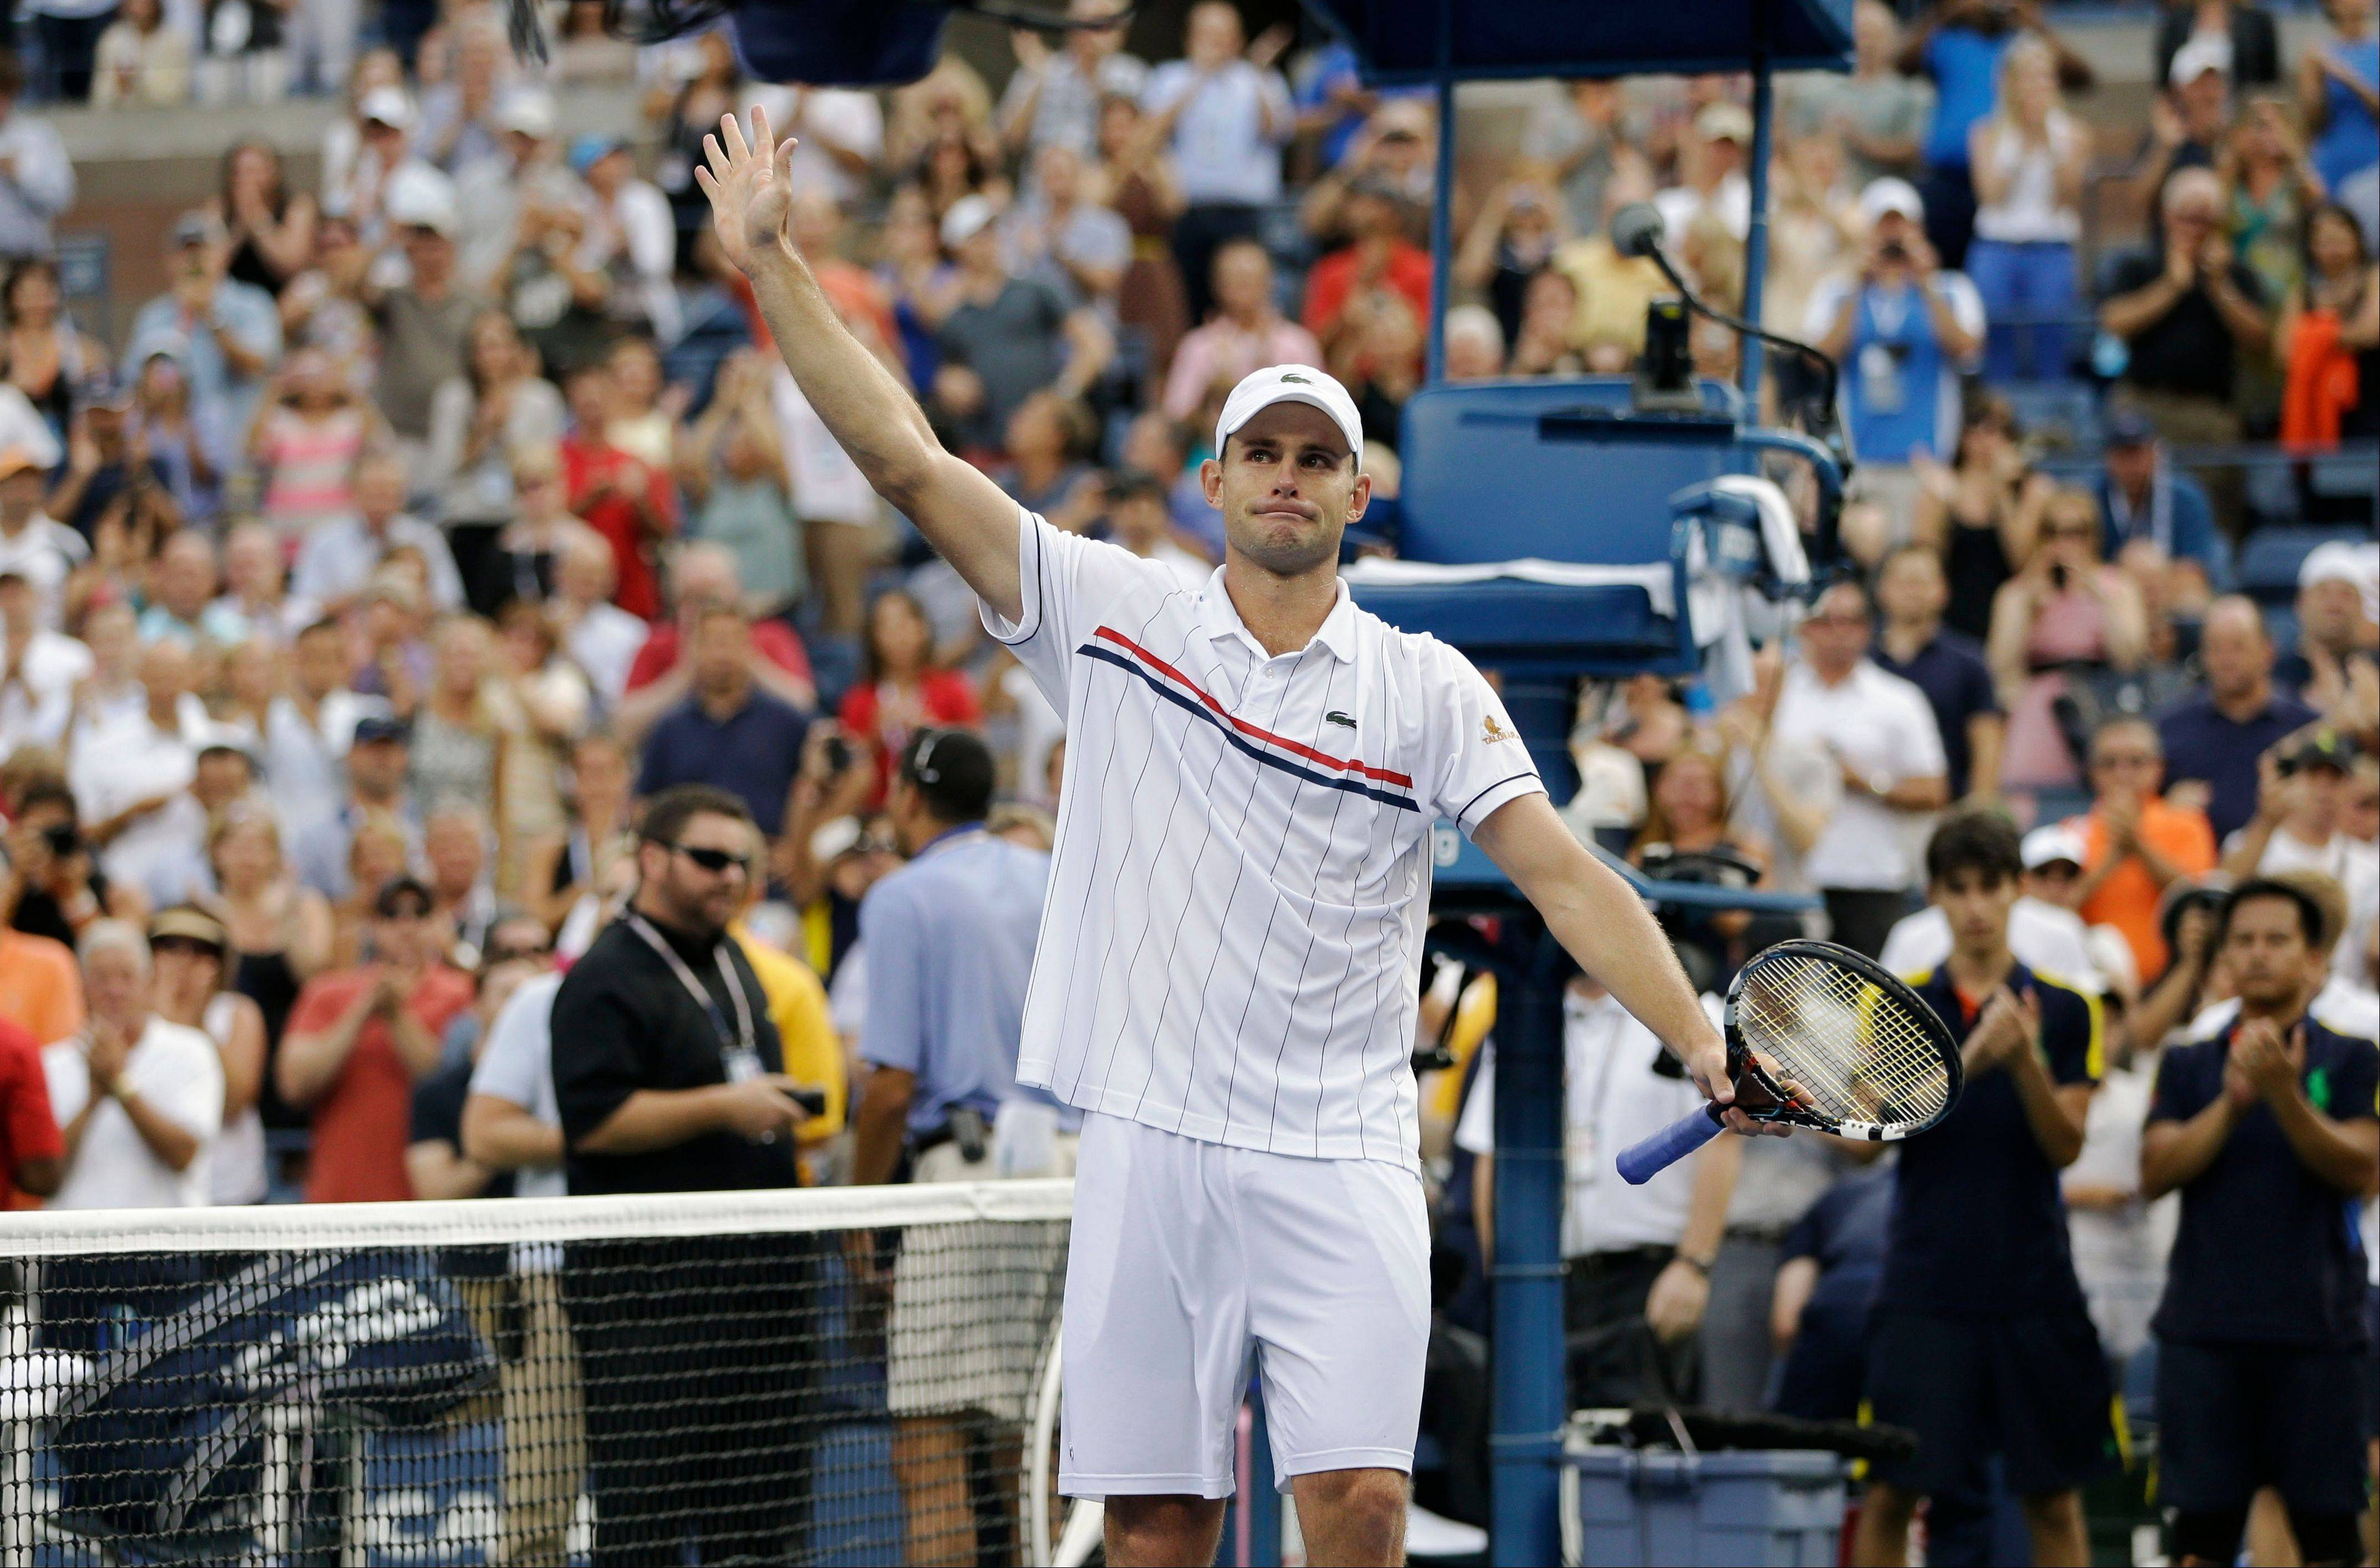 Andy Roddick waves to fans after his loss to Argentina�s Juan Martin del Potro in the quarterfinals Wednesday at the U.S. Open in New York. Roddick said he would retire after the match.